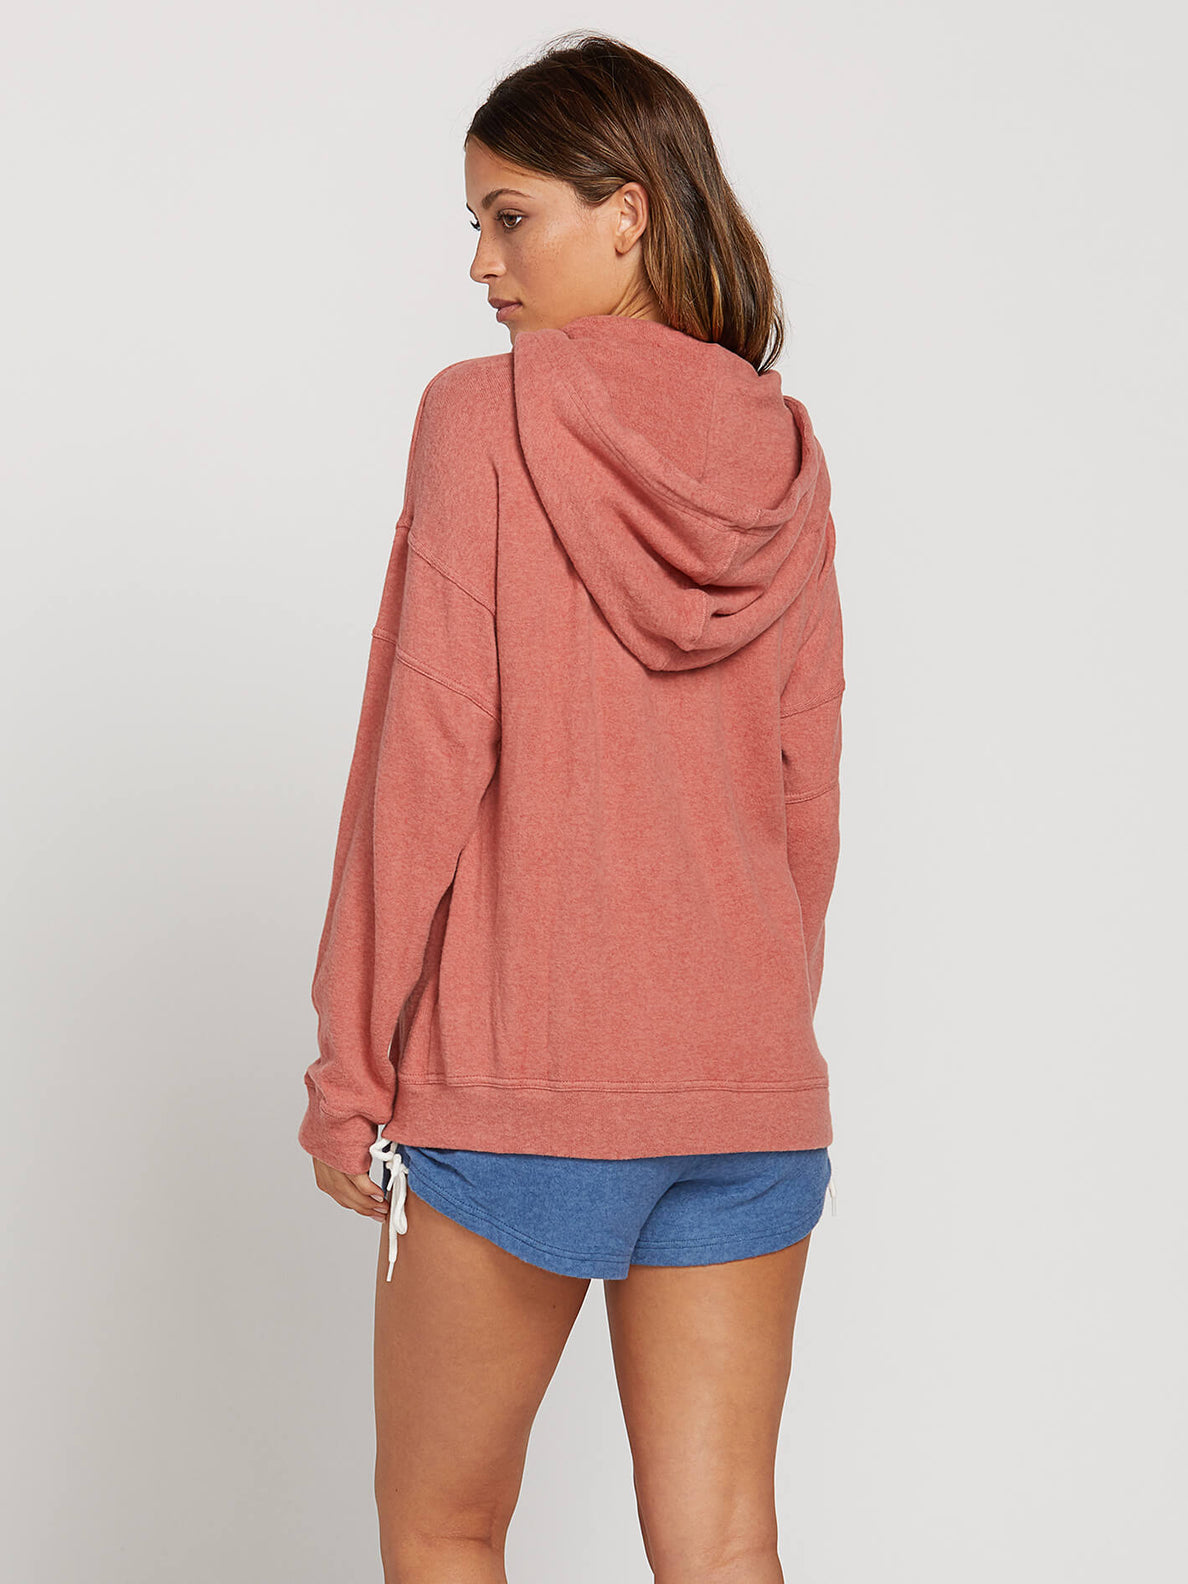 Lived In Lounge Zip Hoodie In Mauve, Back View